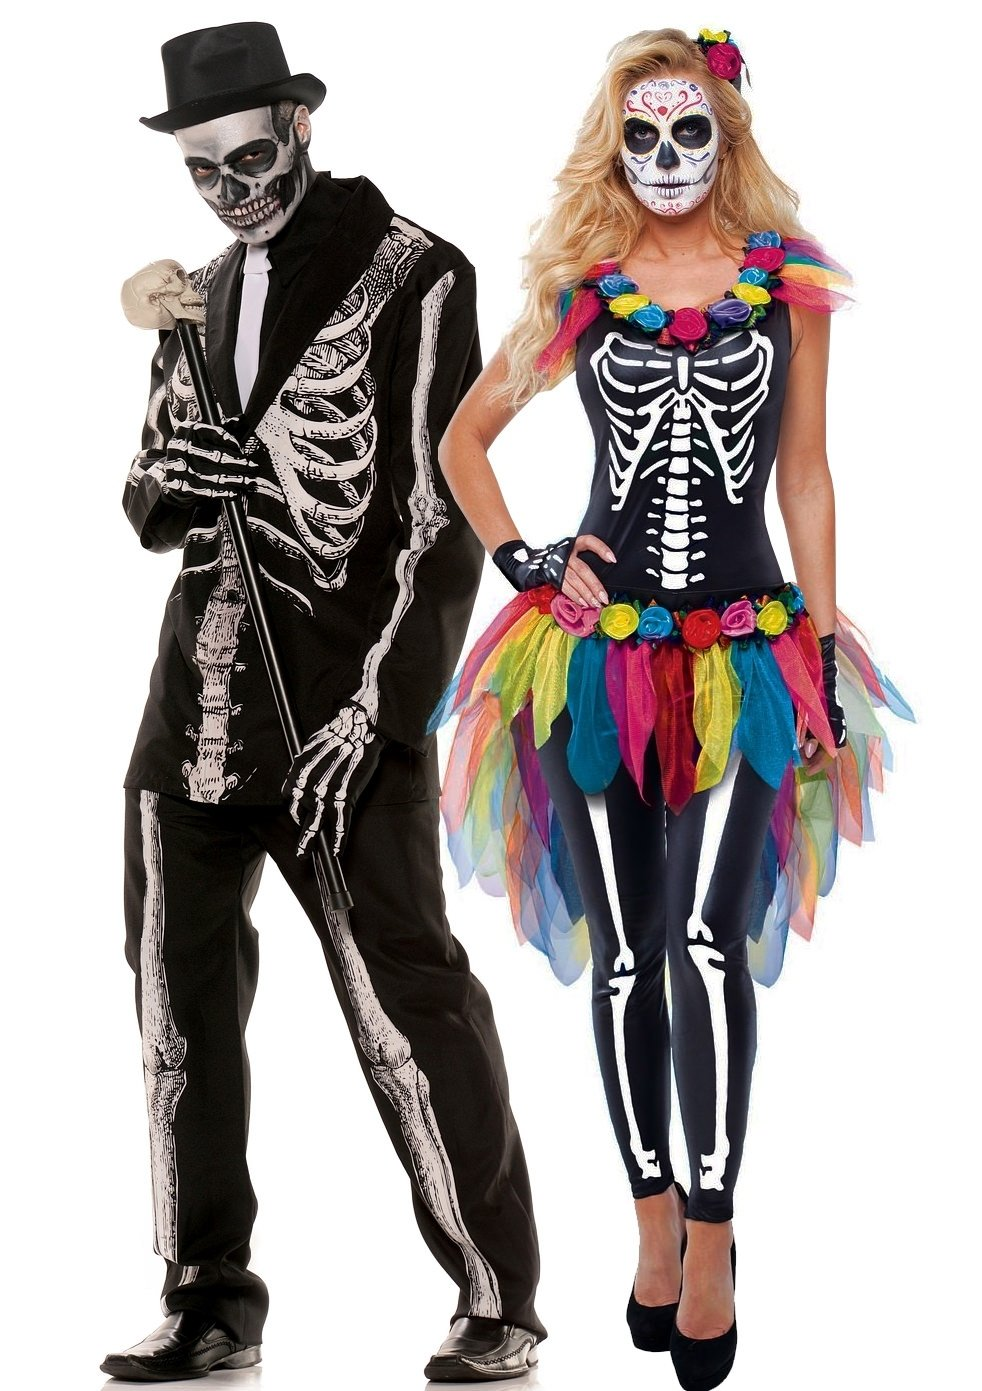 10 Nice Day Of The Dead Costumes Ideas 30 hot new halloween costume ideas for 2015 mtl blog 2020